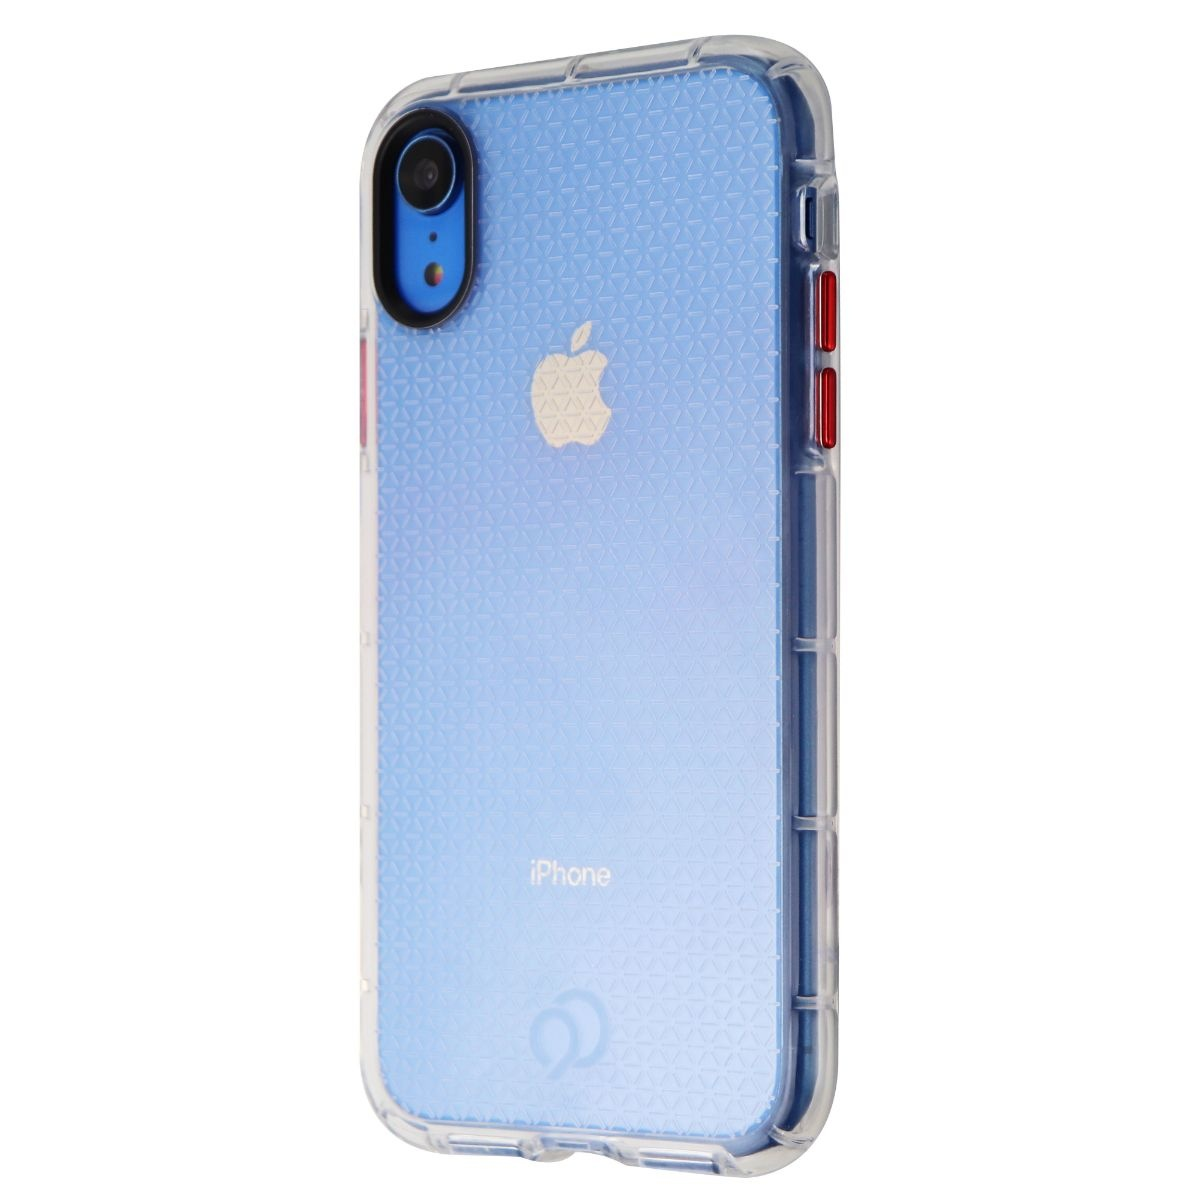 Nimbus9 Phantom 2 Slim Protective Gel Case for Apple iPhone XR - Clear